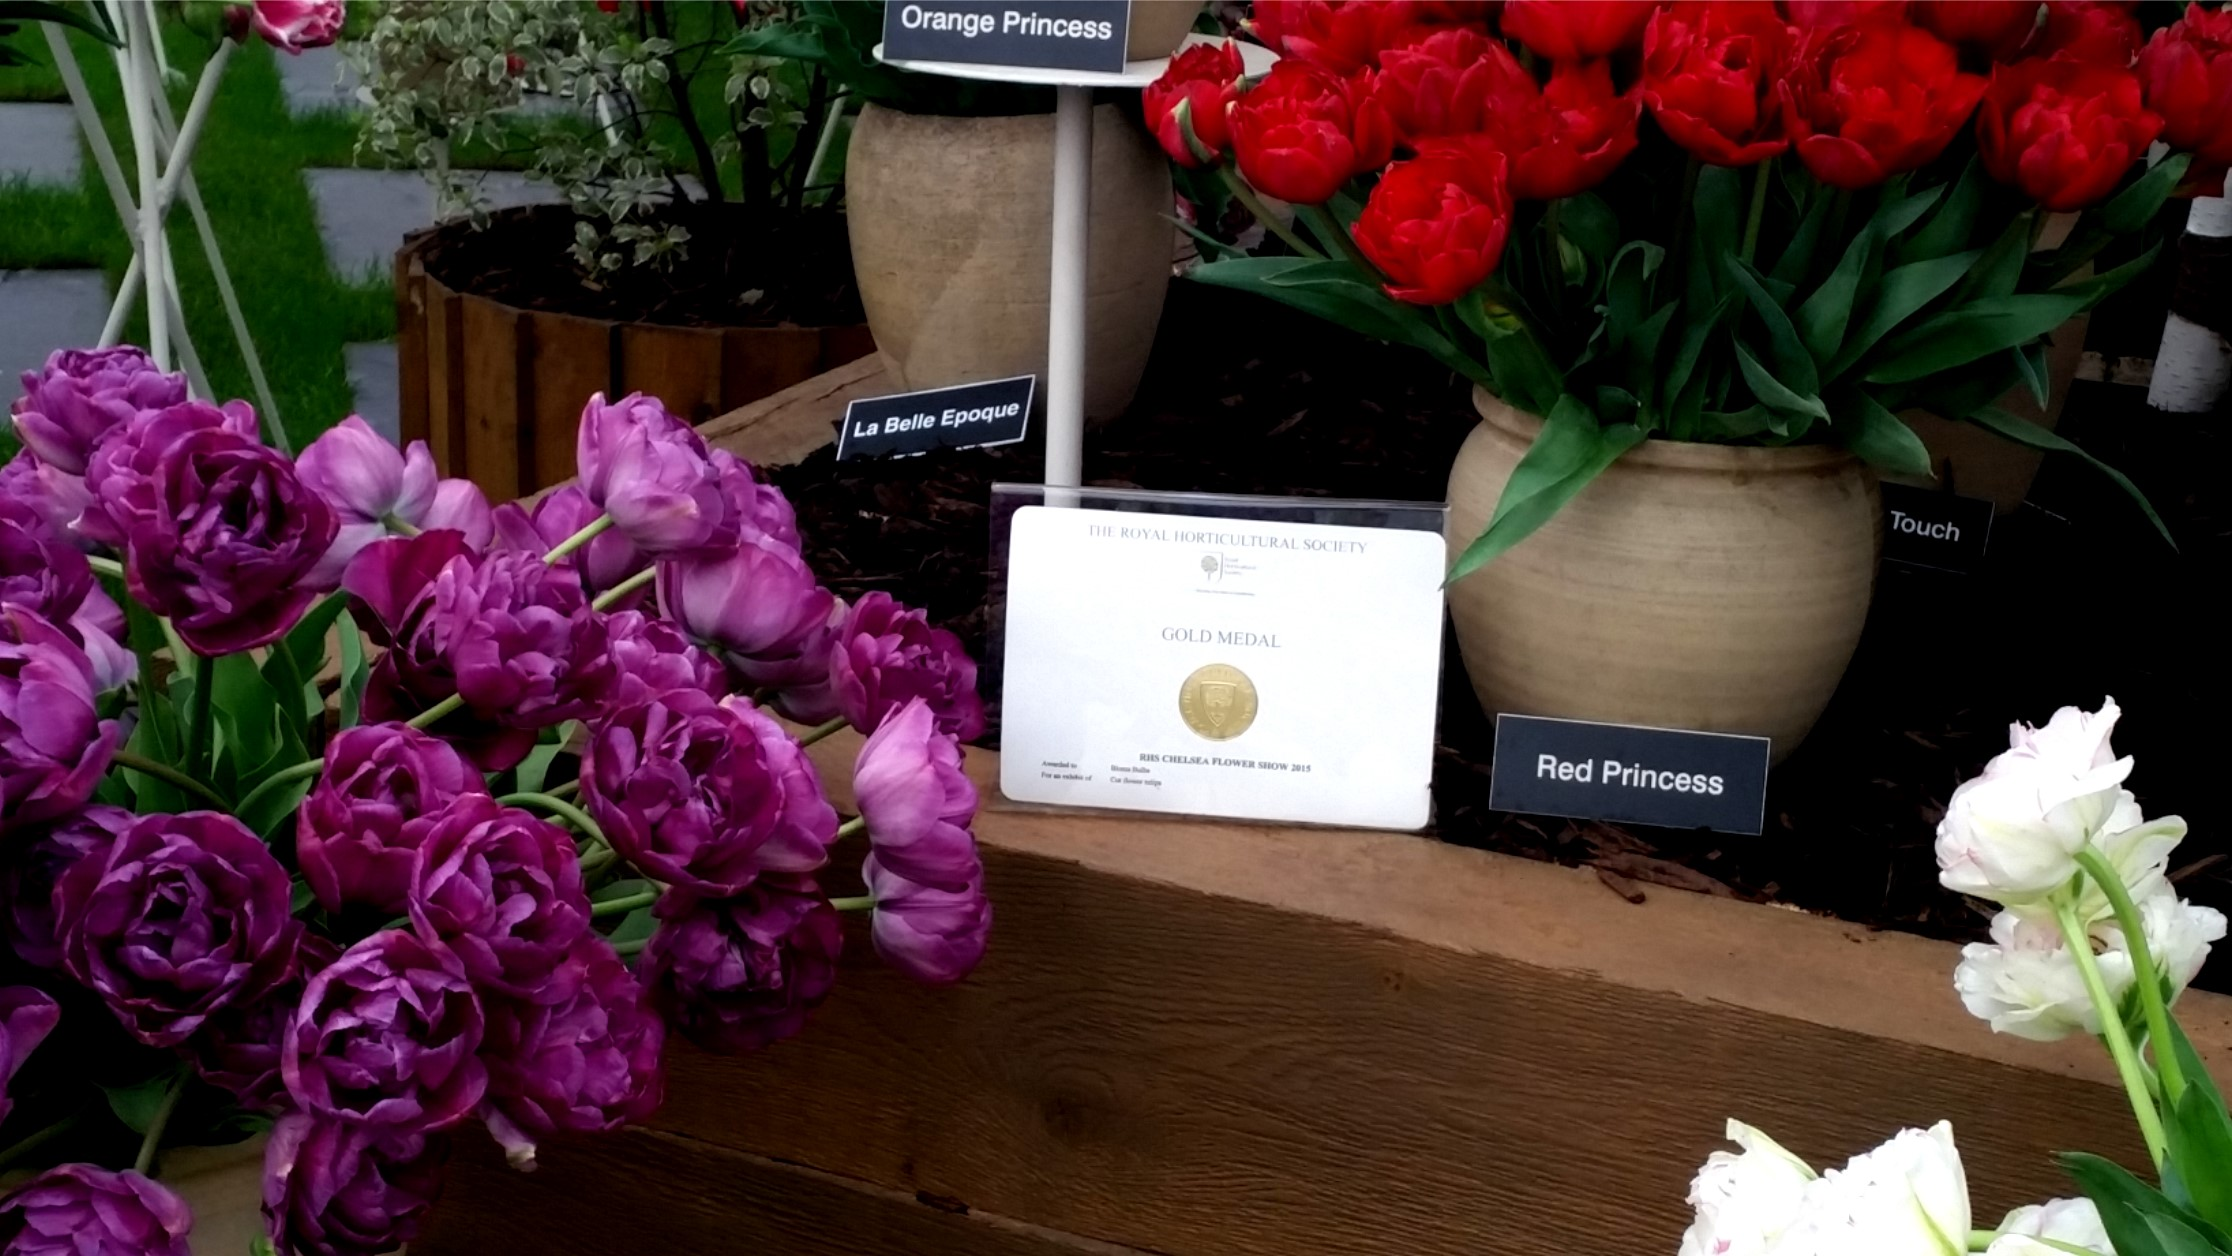 Bloms Bulbs 64th Gold Medal at Chelsea Flower Show